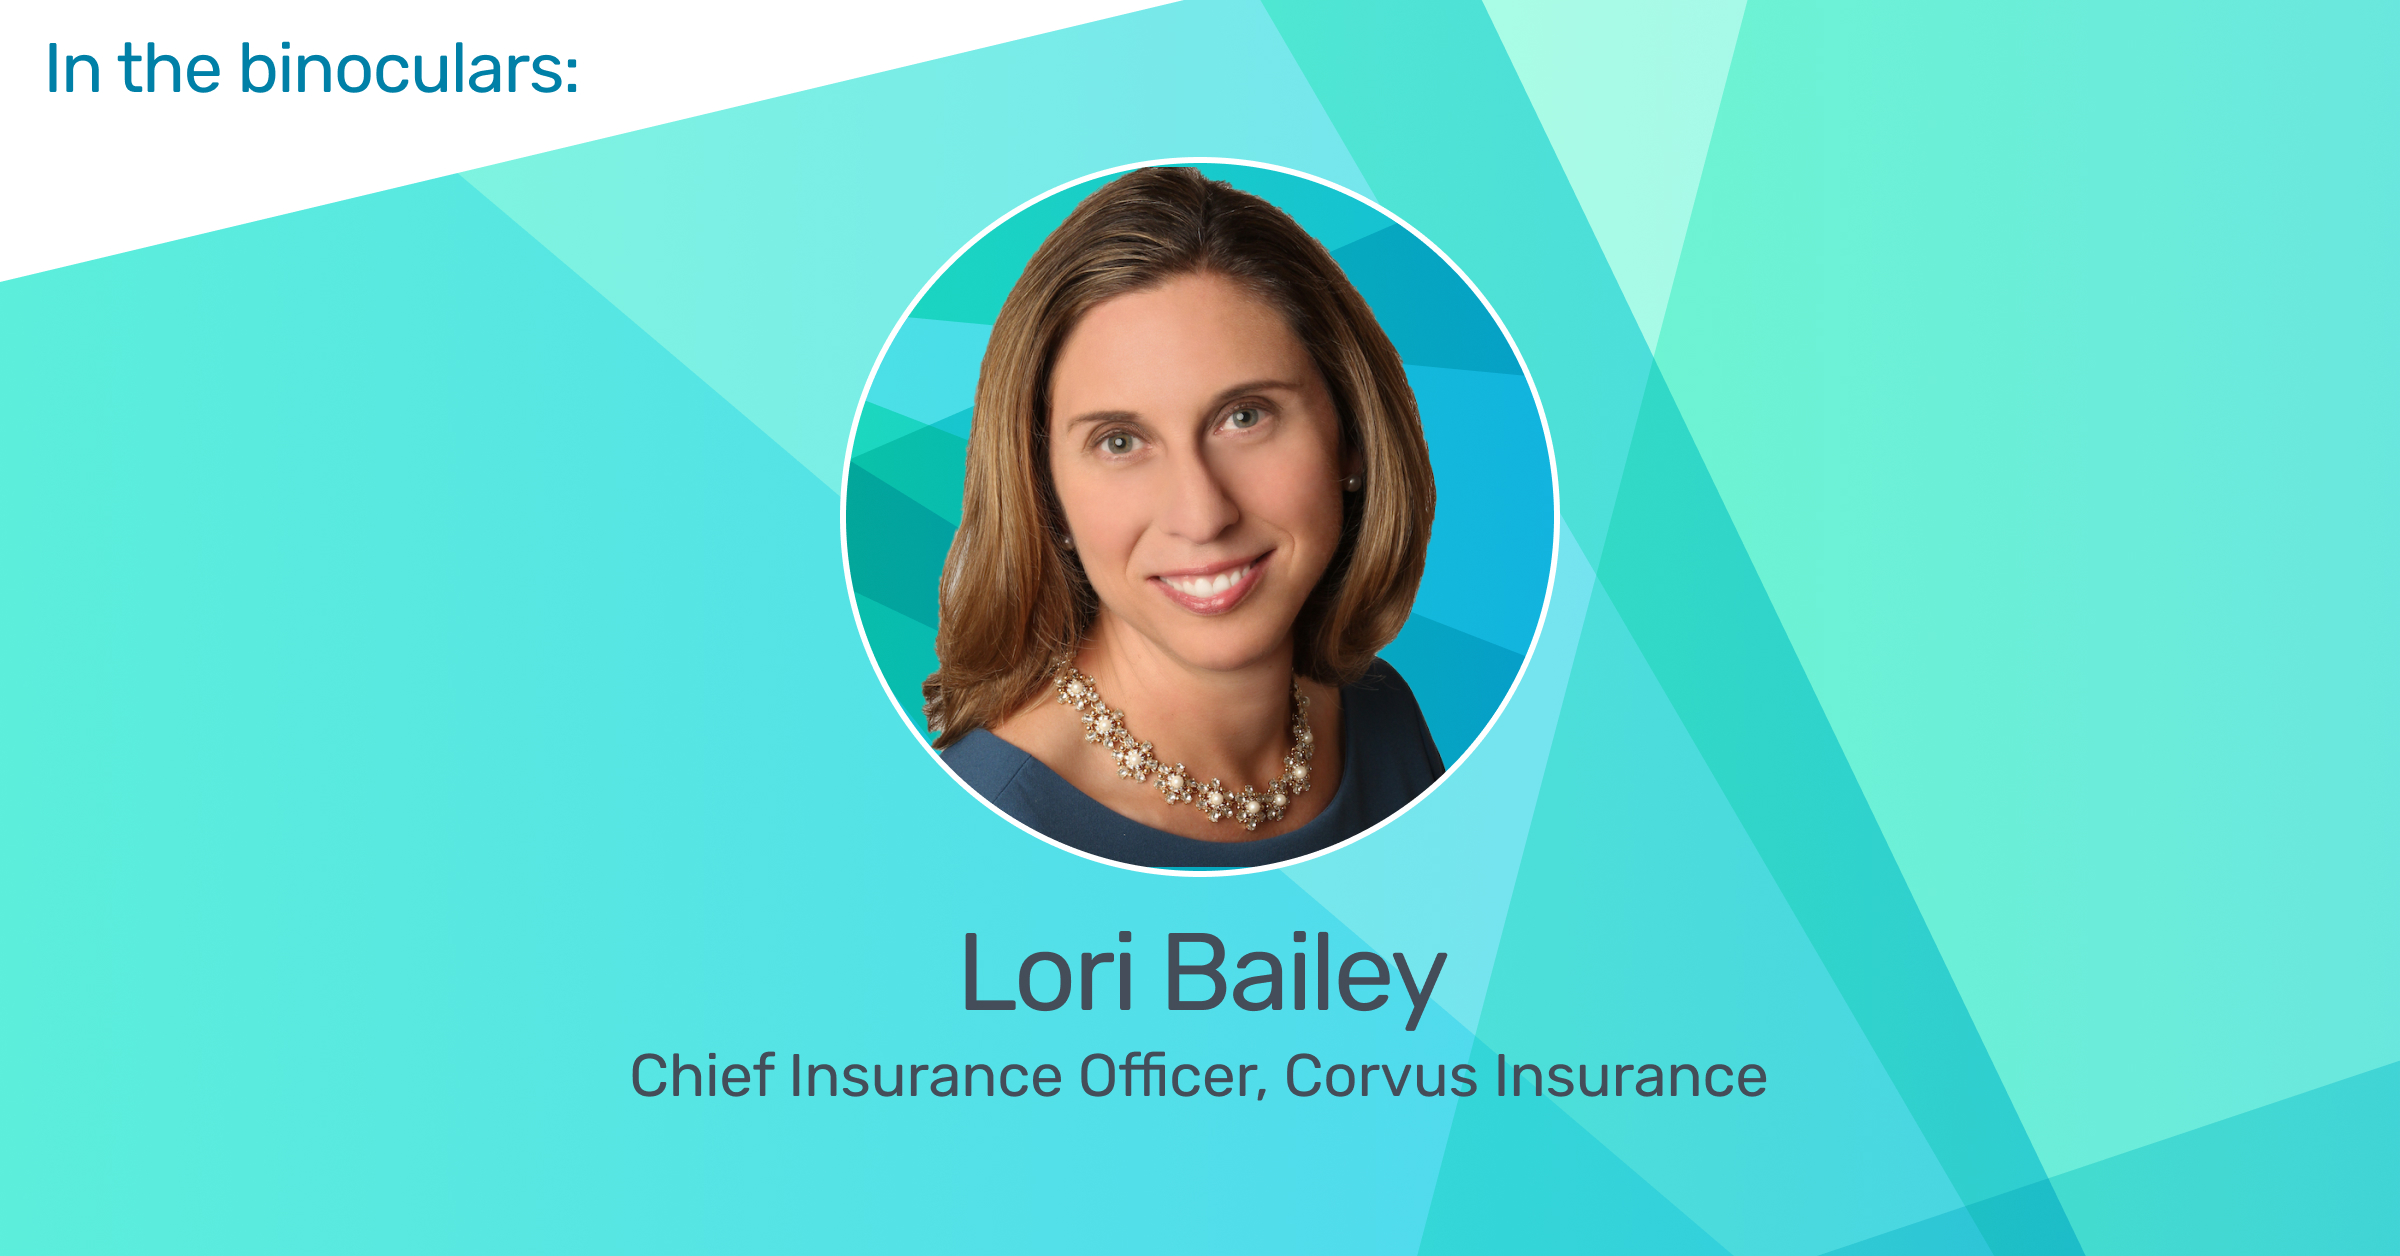 [RELATED POST] In the Binoculars: Lori Bailey, Chief Insurance Officer